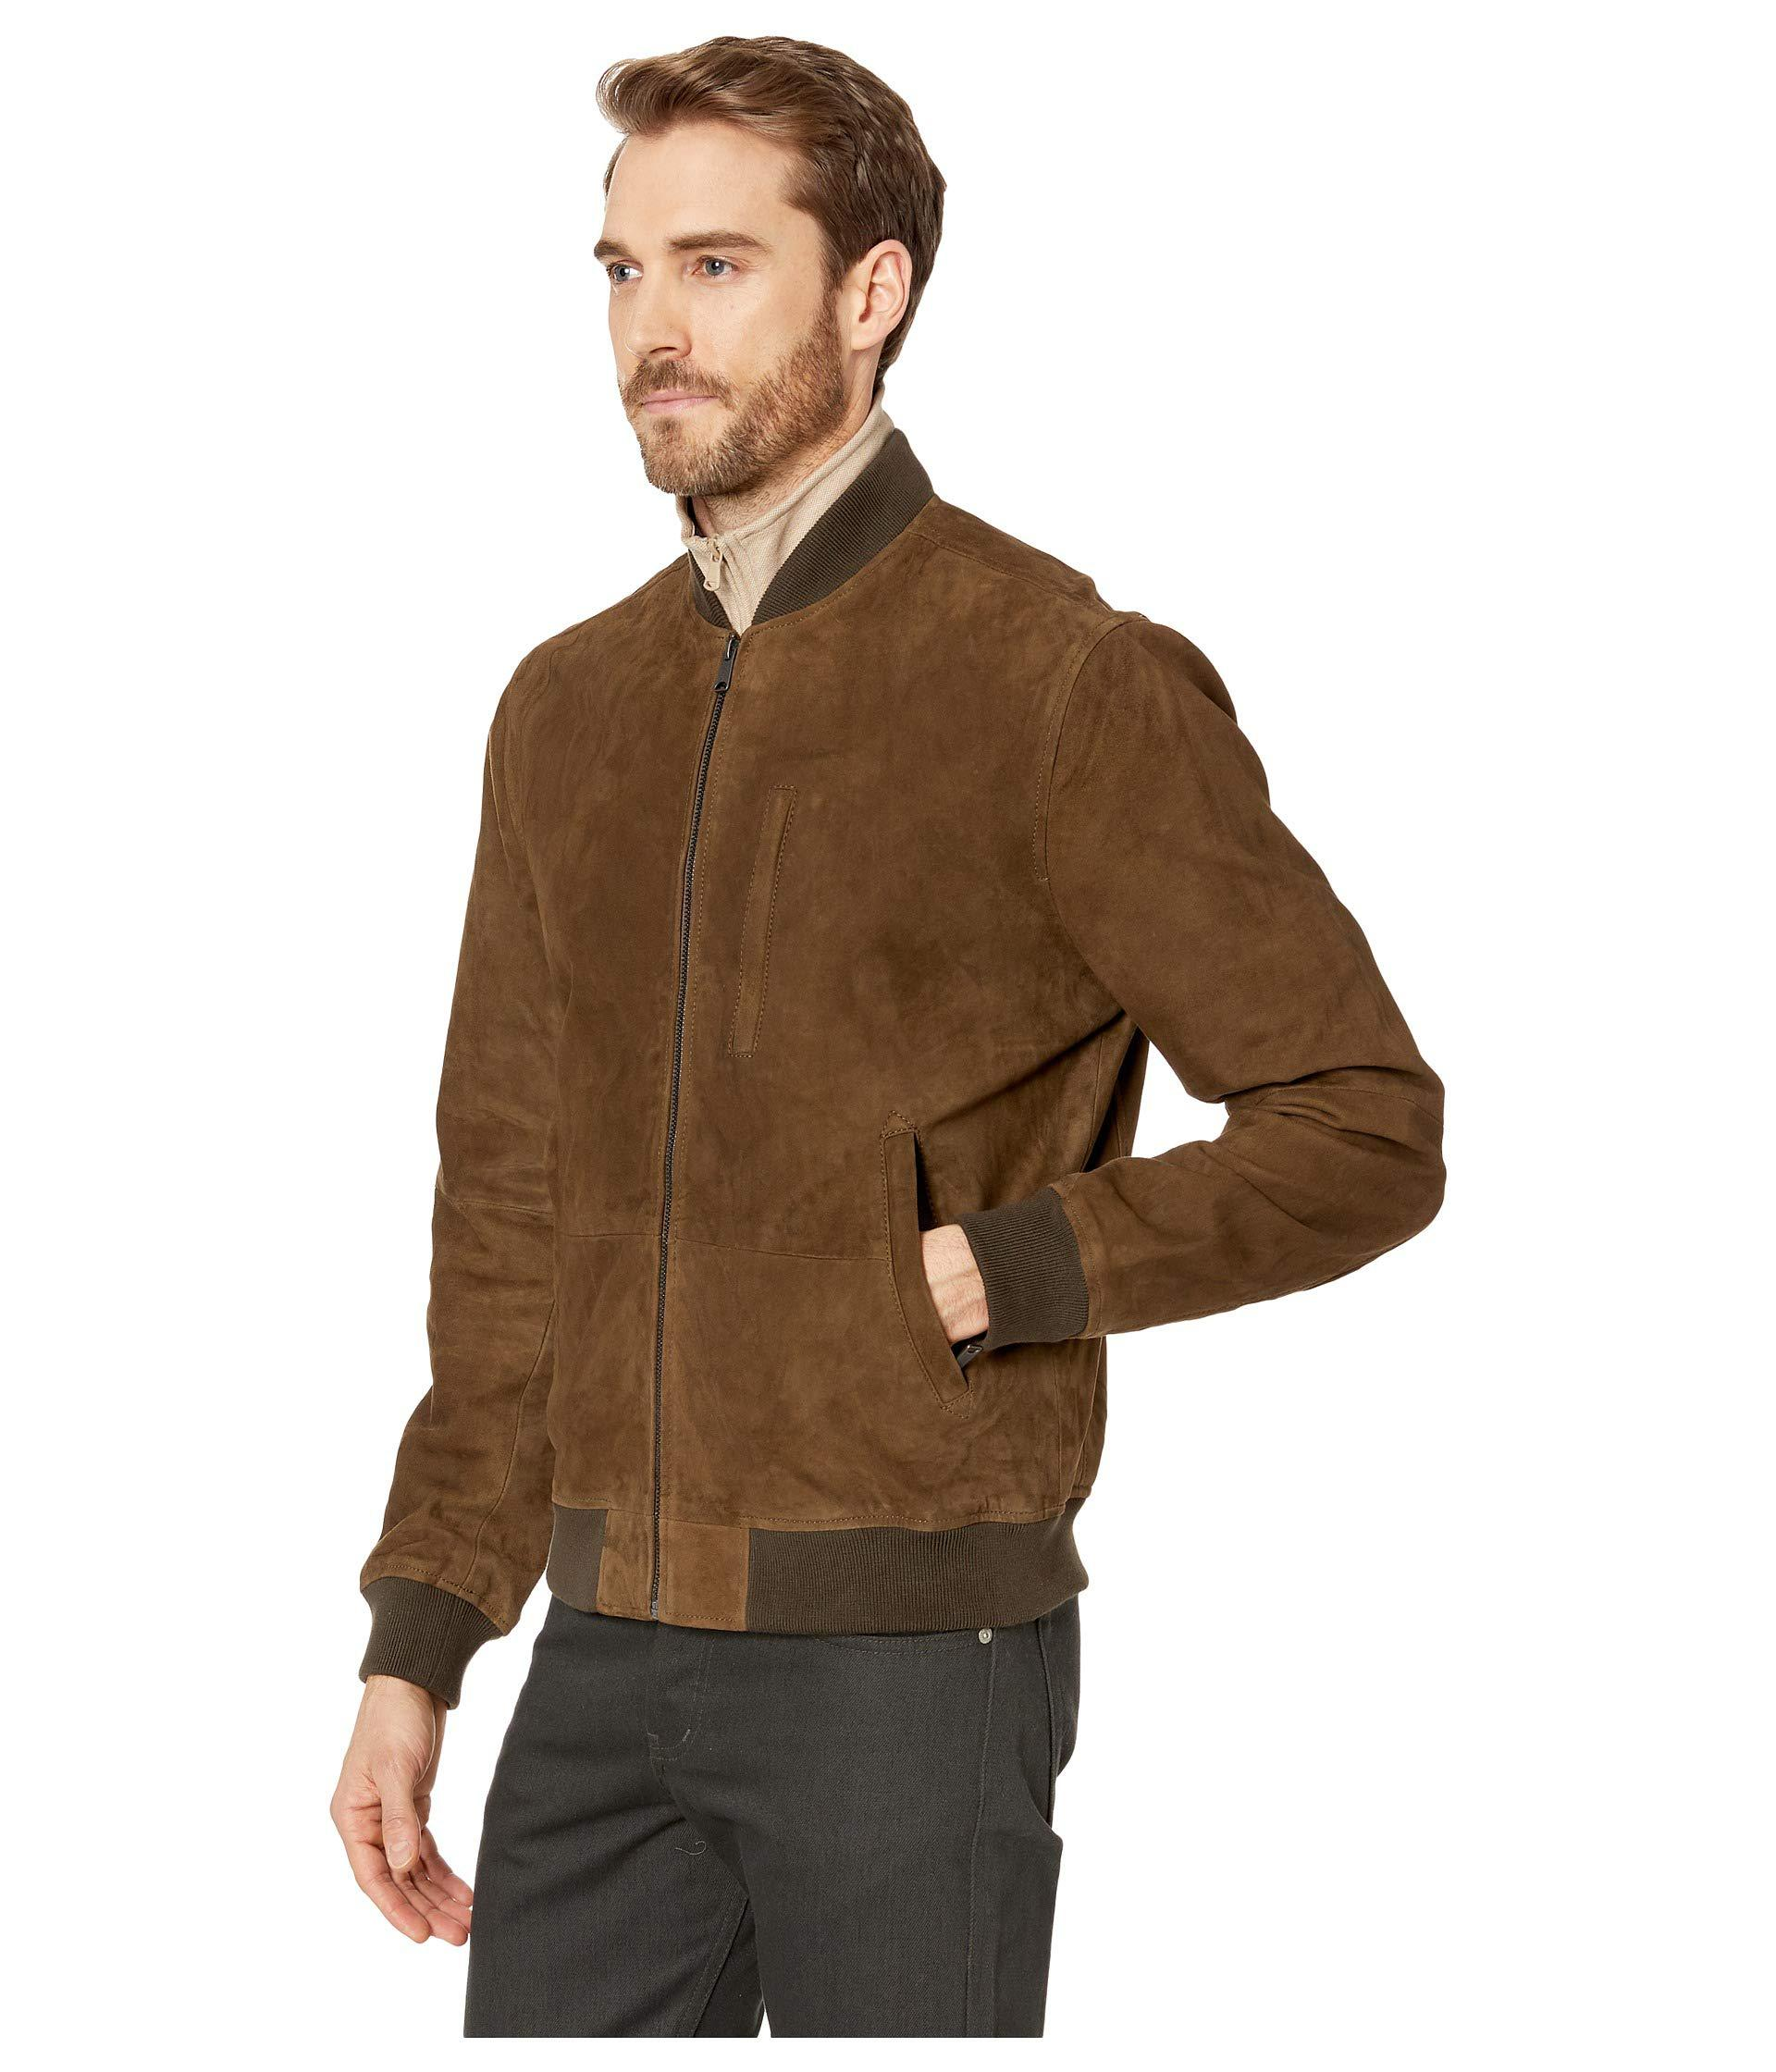 d4d4574b2 Lucky Brand Green Suede Leather Bomber Jacket (dark Olive) Coat for men